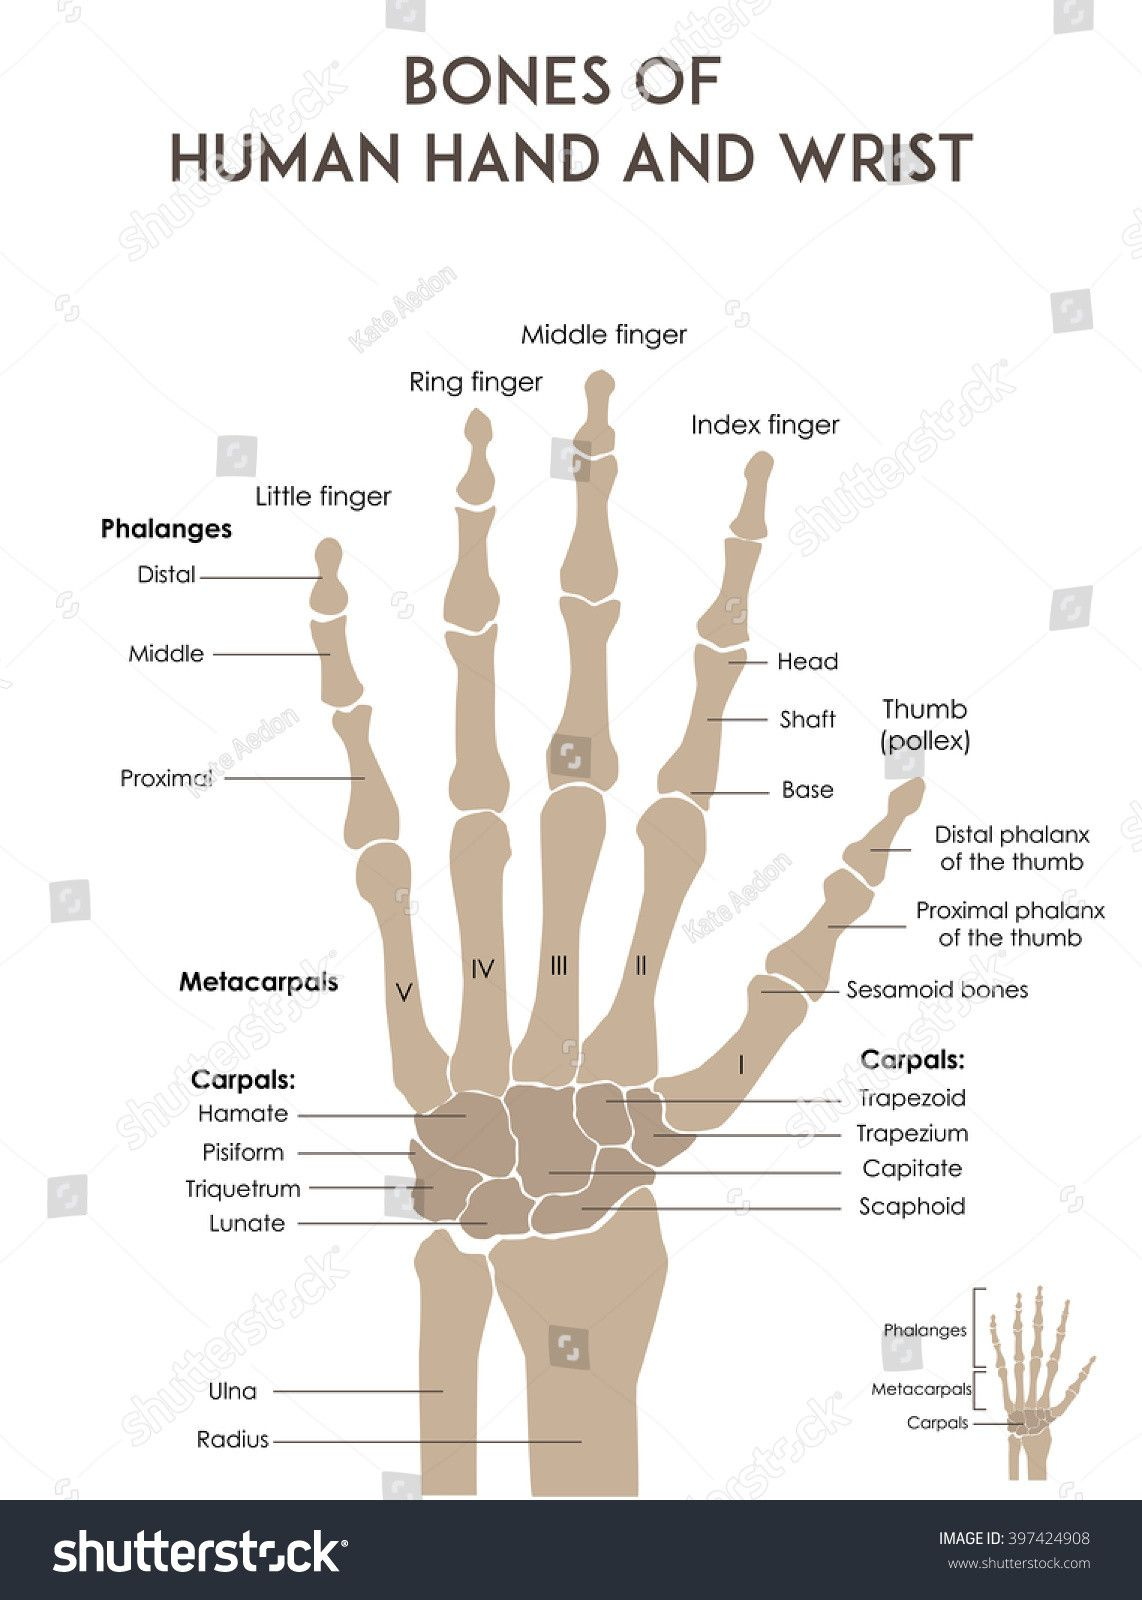 Bones Of The Hand Labeled Fresh Bones Human Hand And Wrist Medically Accurate Vector In 2020